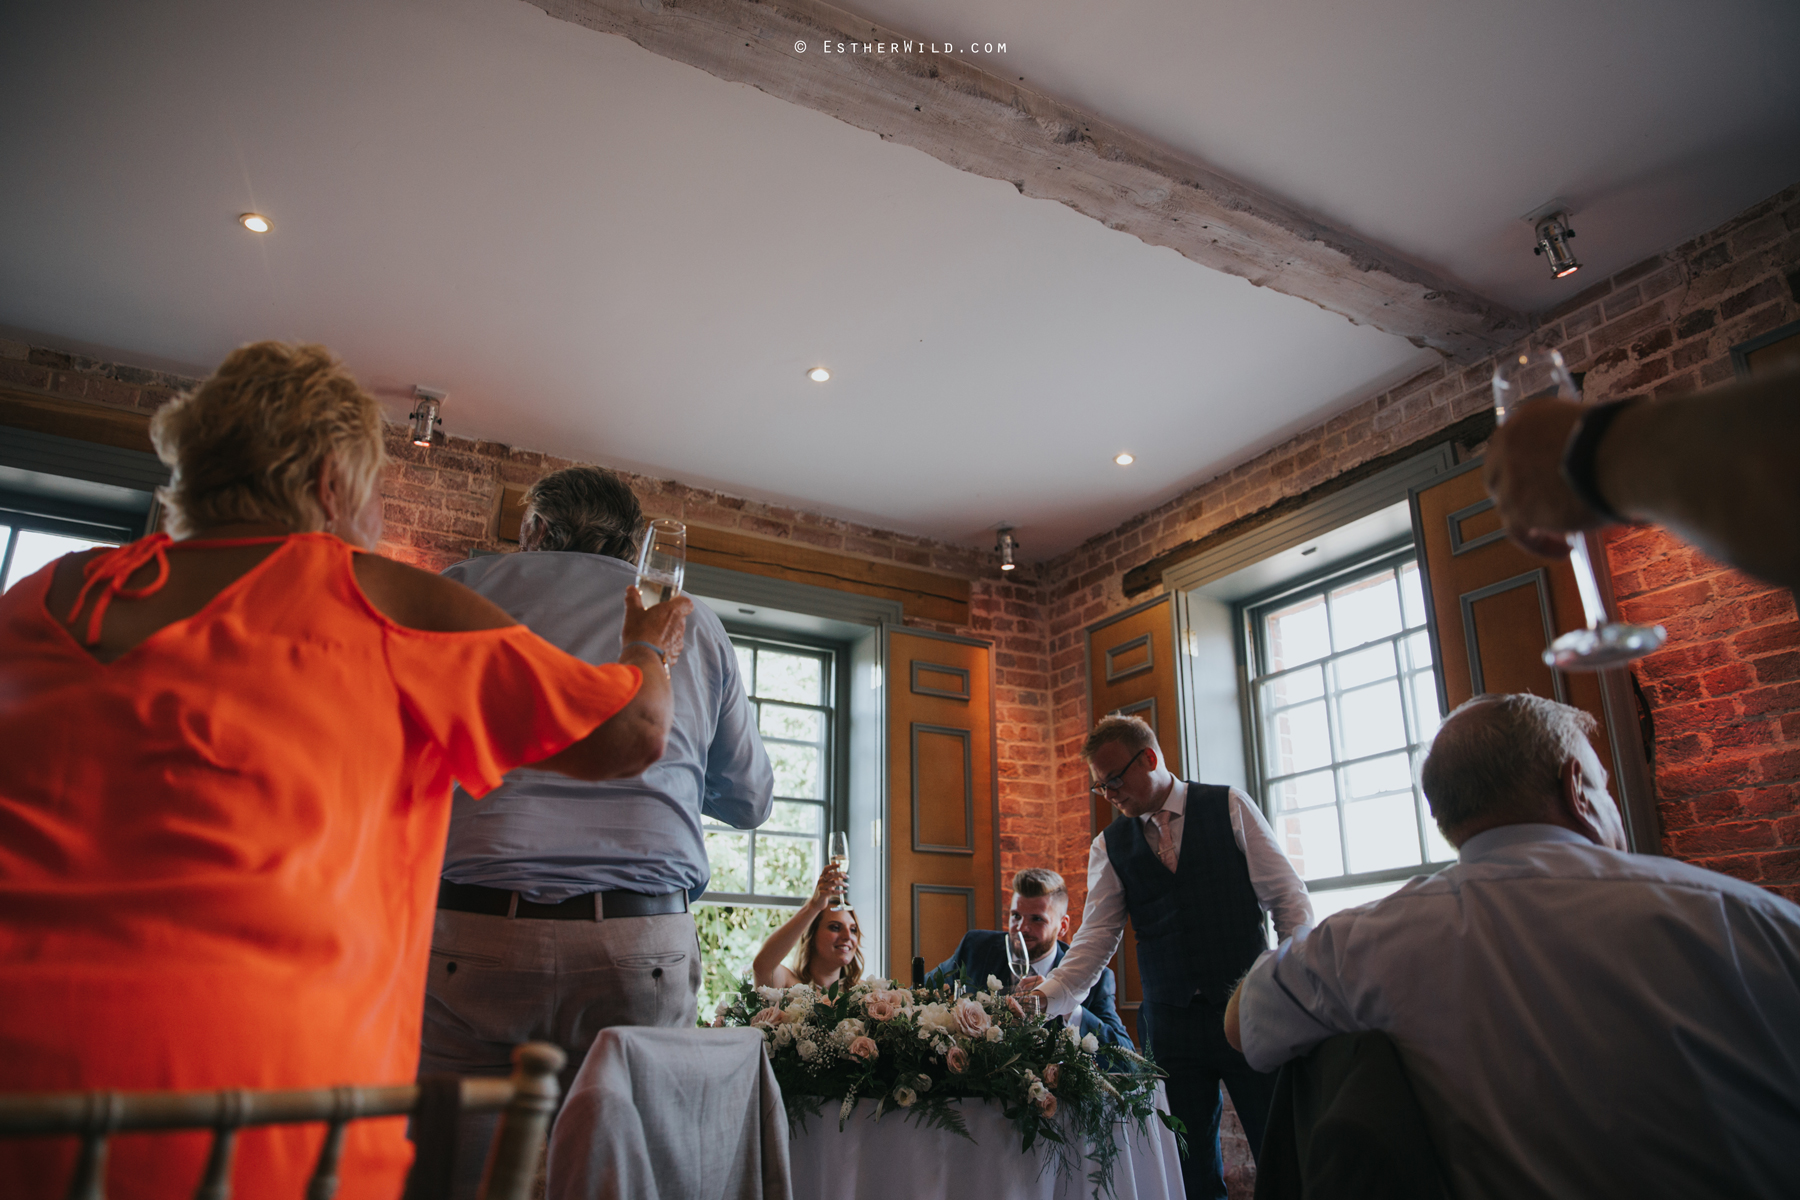 Kimberley_Hall_Wedding_Norfolk_Photography_Esther_Wild_IMG_2092.jpg